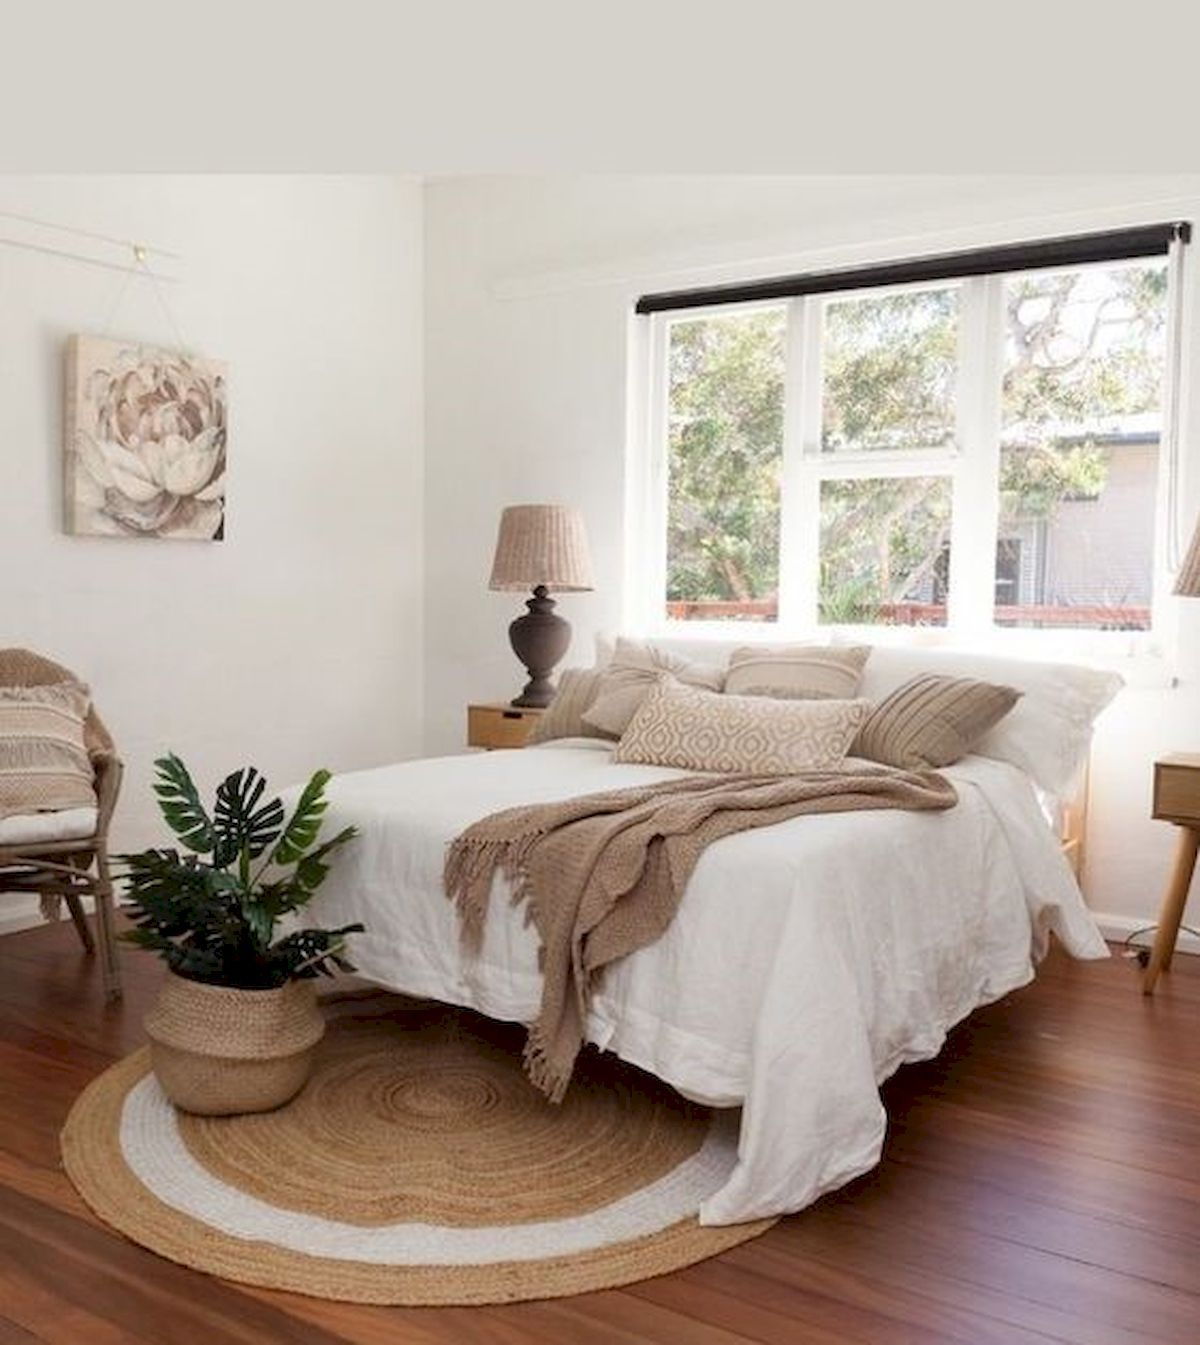 57 Stunning Modern Farmhouse Bedroom Design Ideas and Decor images